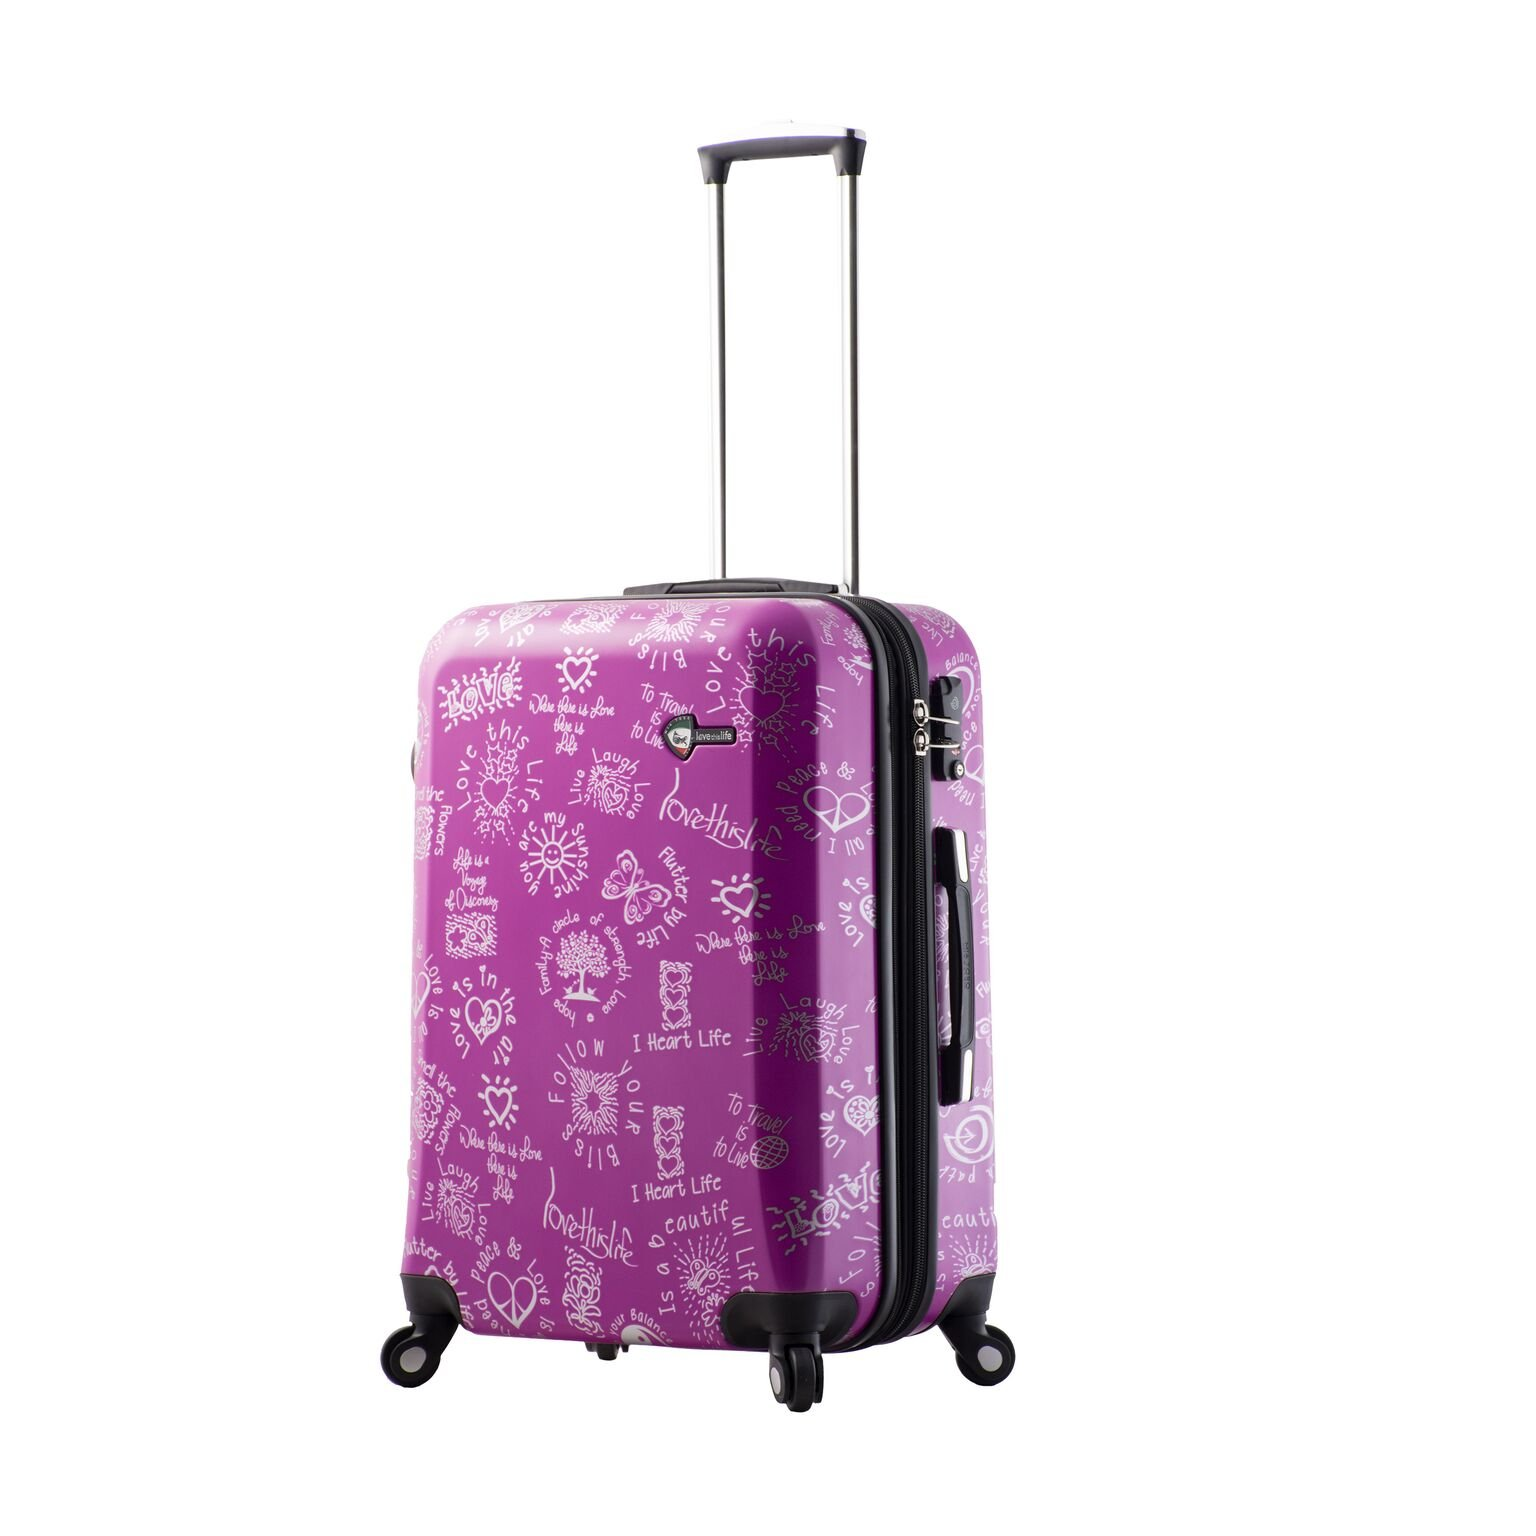 Mia Toro M1089-24in-Pur Love This Life-Medallions Hardside 24 Inch Spinner, Purple